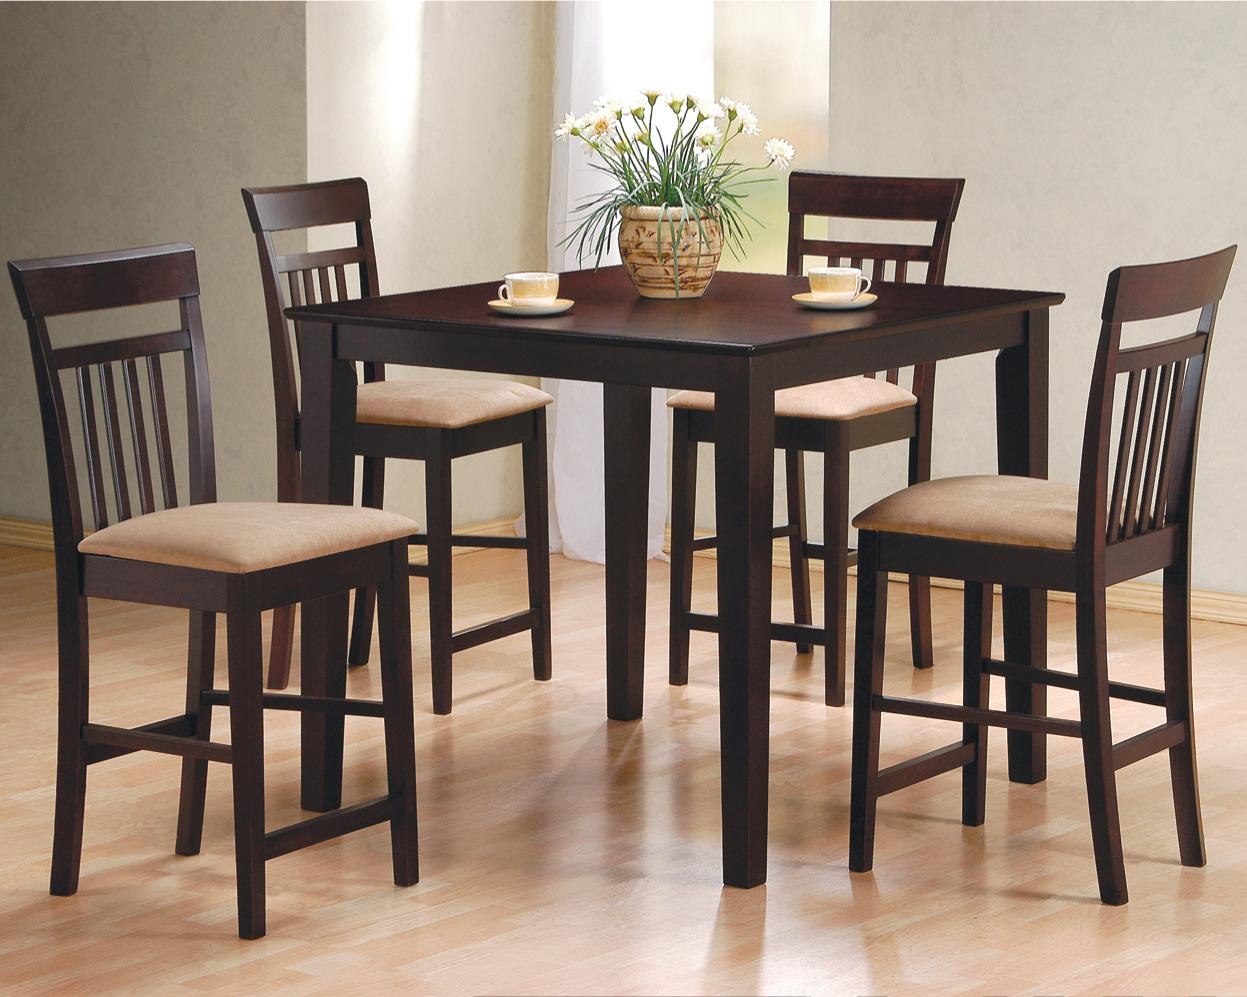 Bar Height Table And Chairs Mix Match 5 Piece Counter Height Dining Set By Coaster At Dunk Bright Furniture